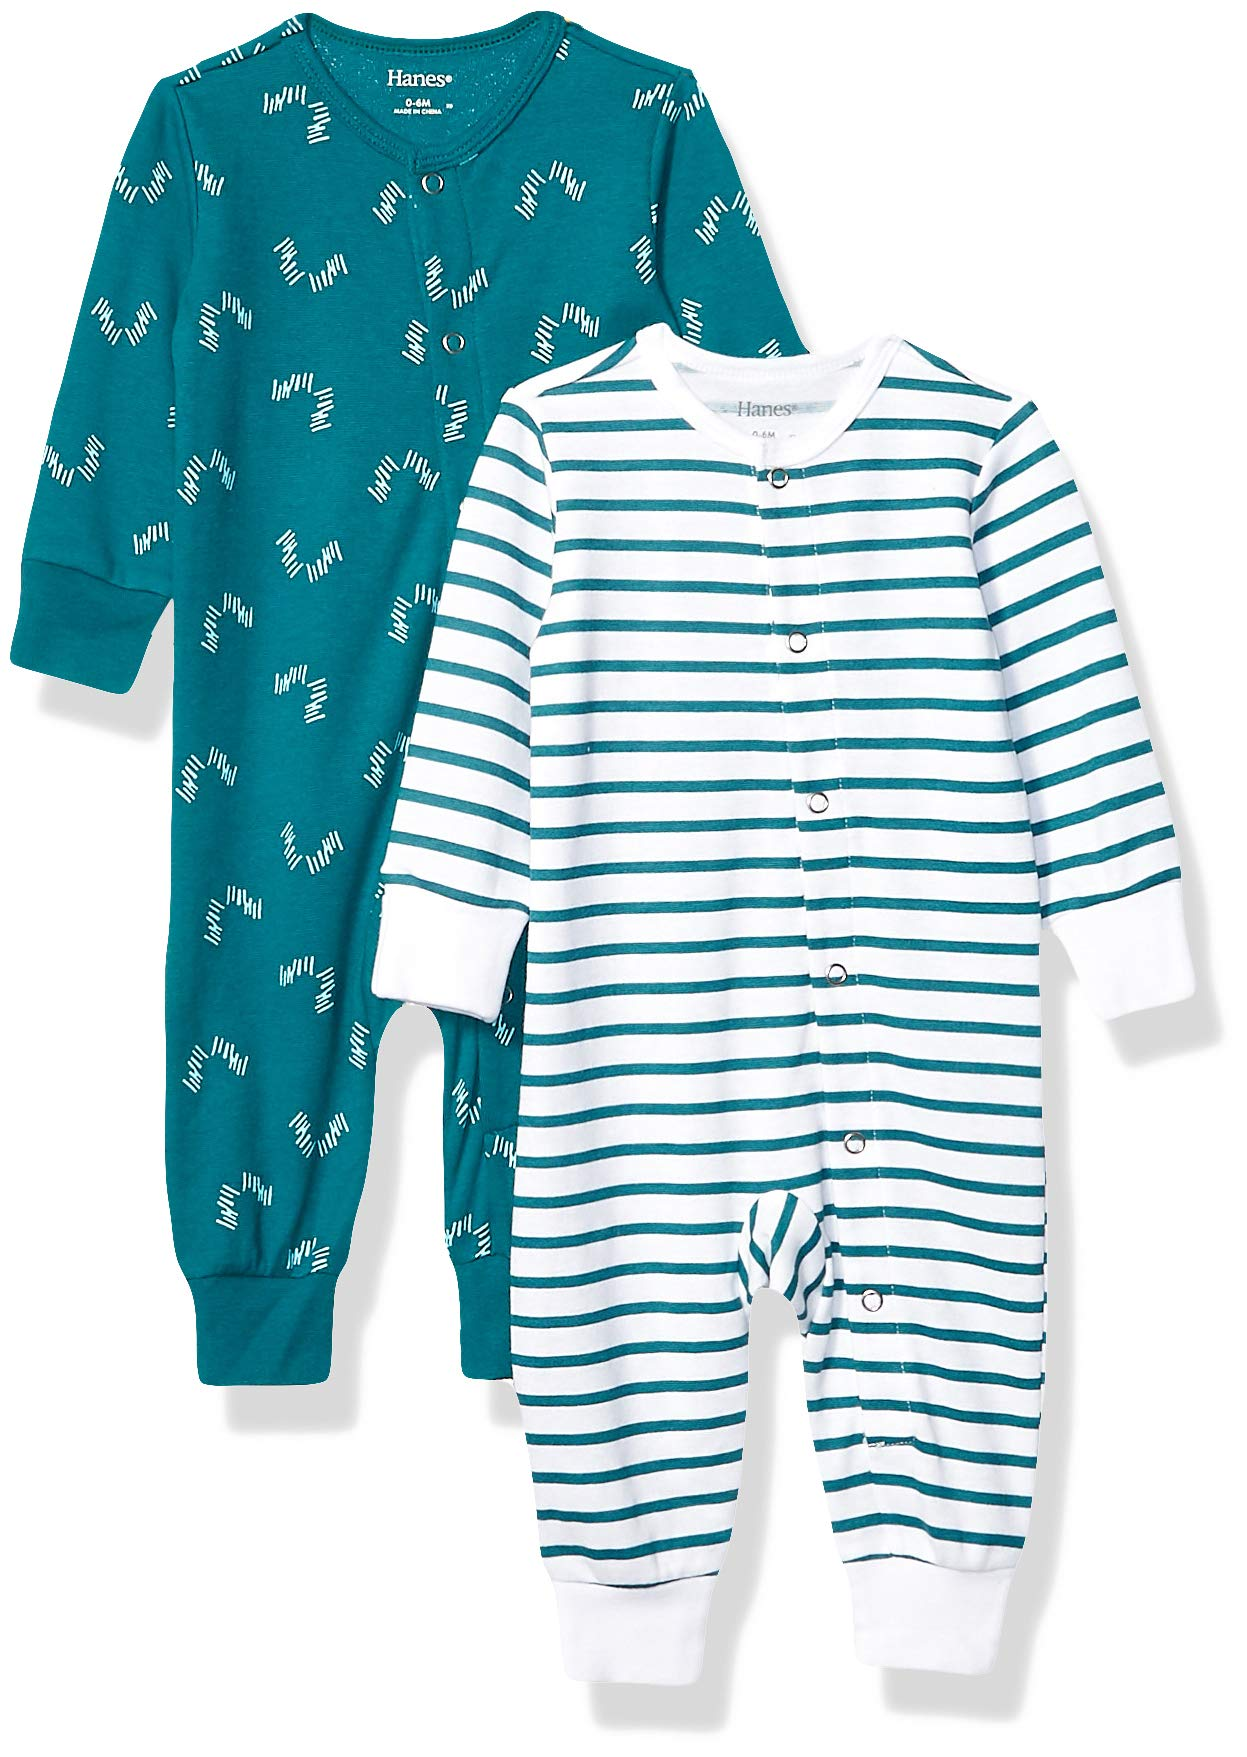 Hanes Ultimate Baby Flexy 2 Pack Sleep and Play Suits, Green Fun, 18-24 Months by Hanes